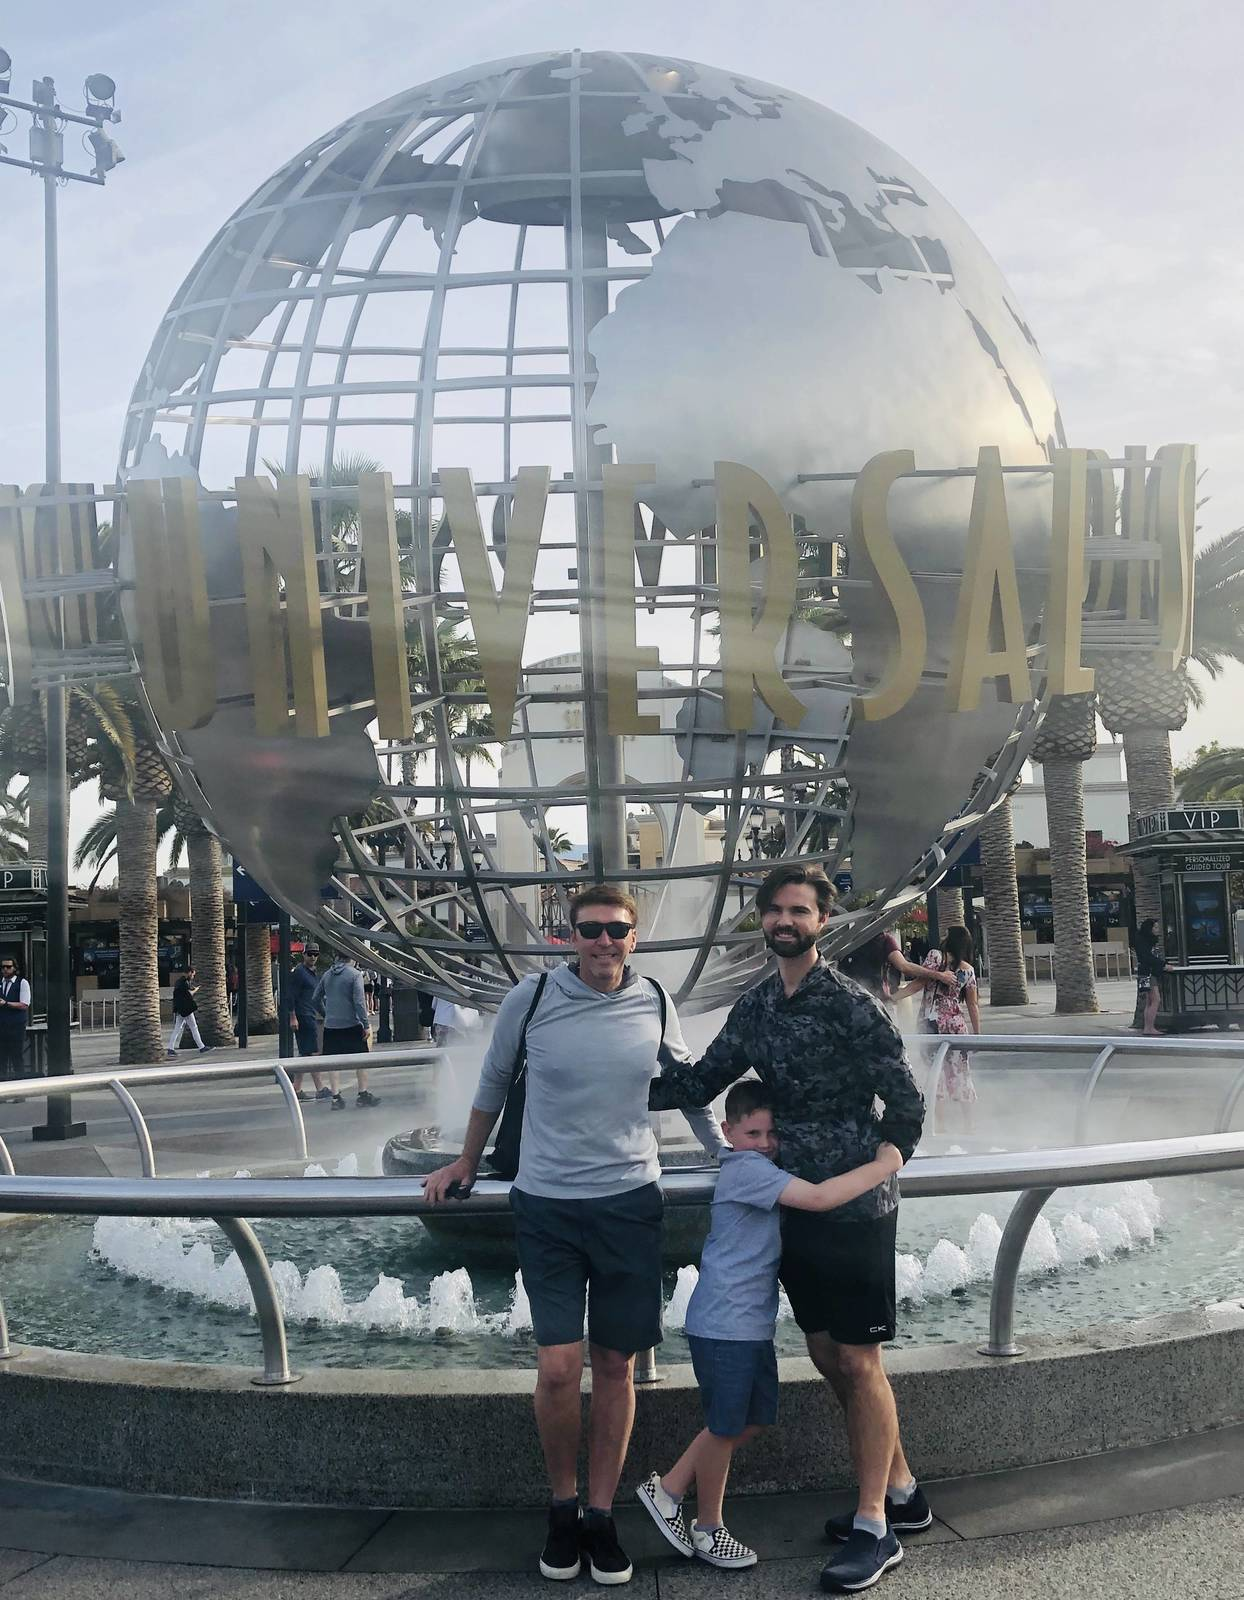 Universal Studios and southern California 2019